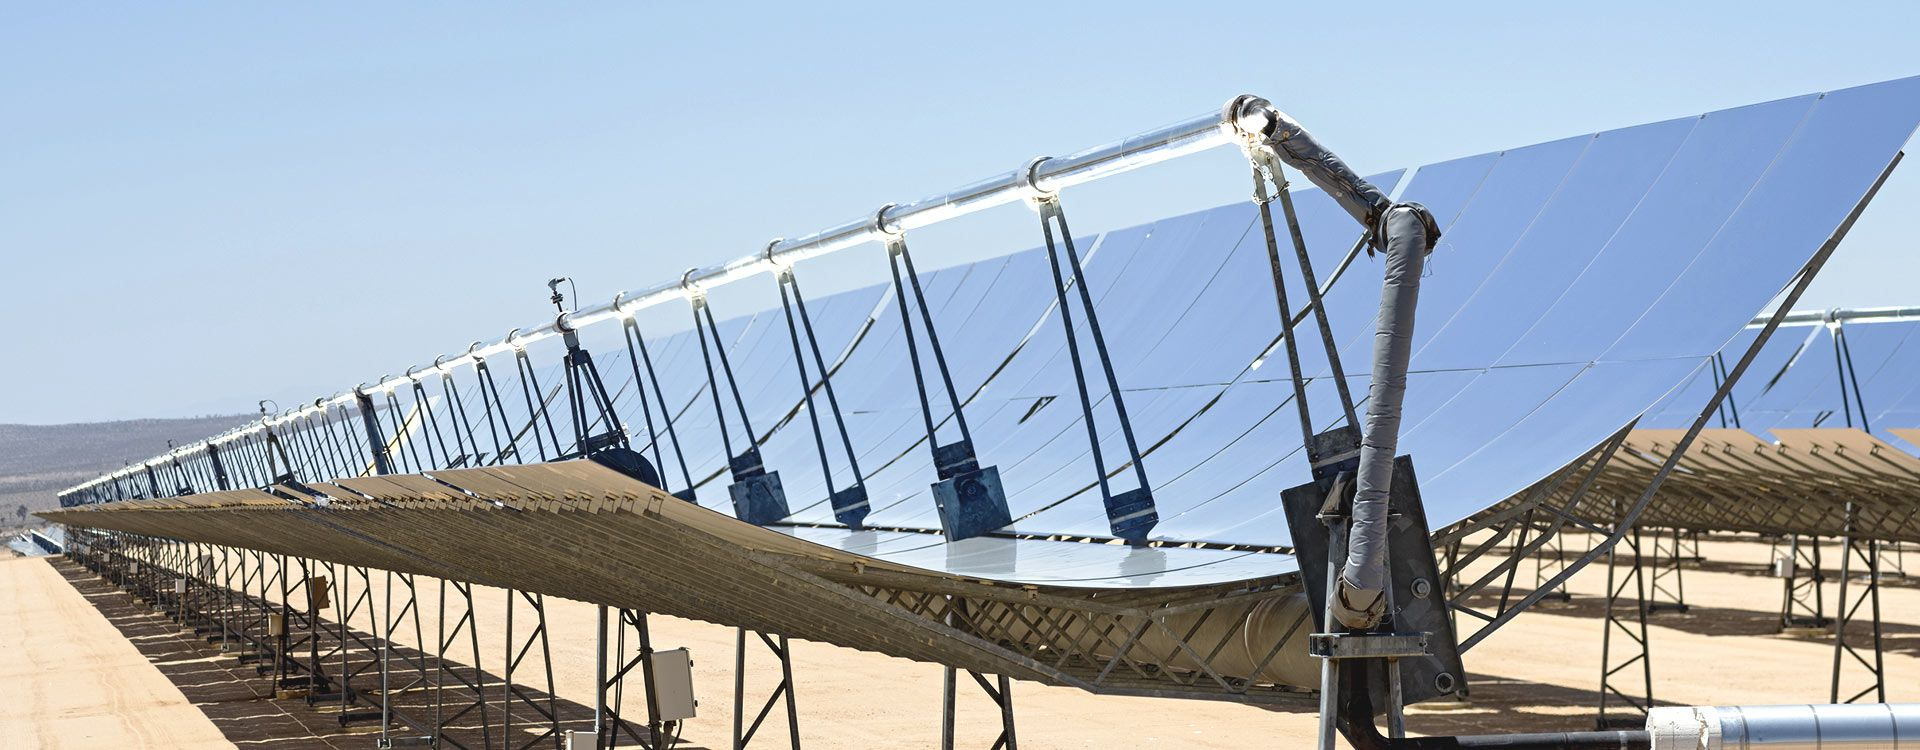 bnr-Kalahari-Solar-Power-Project